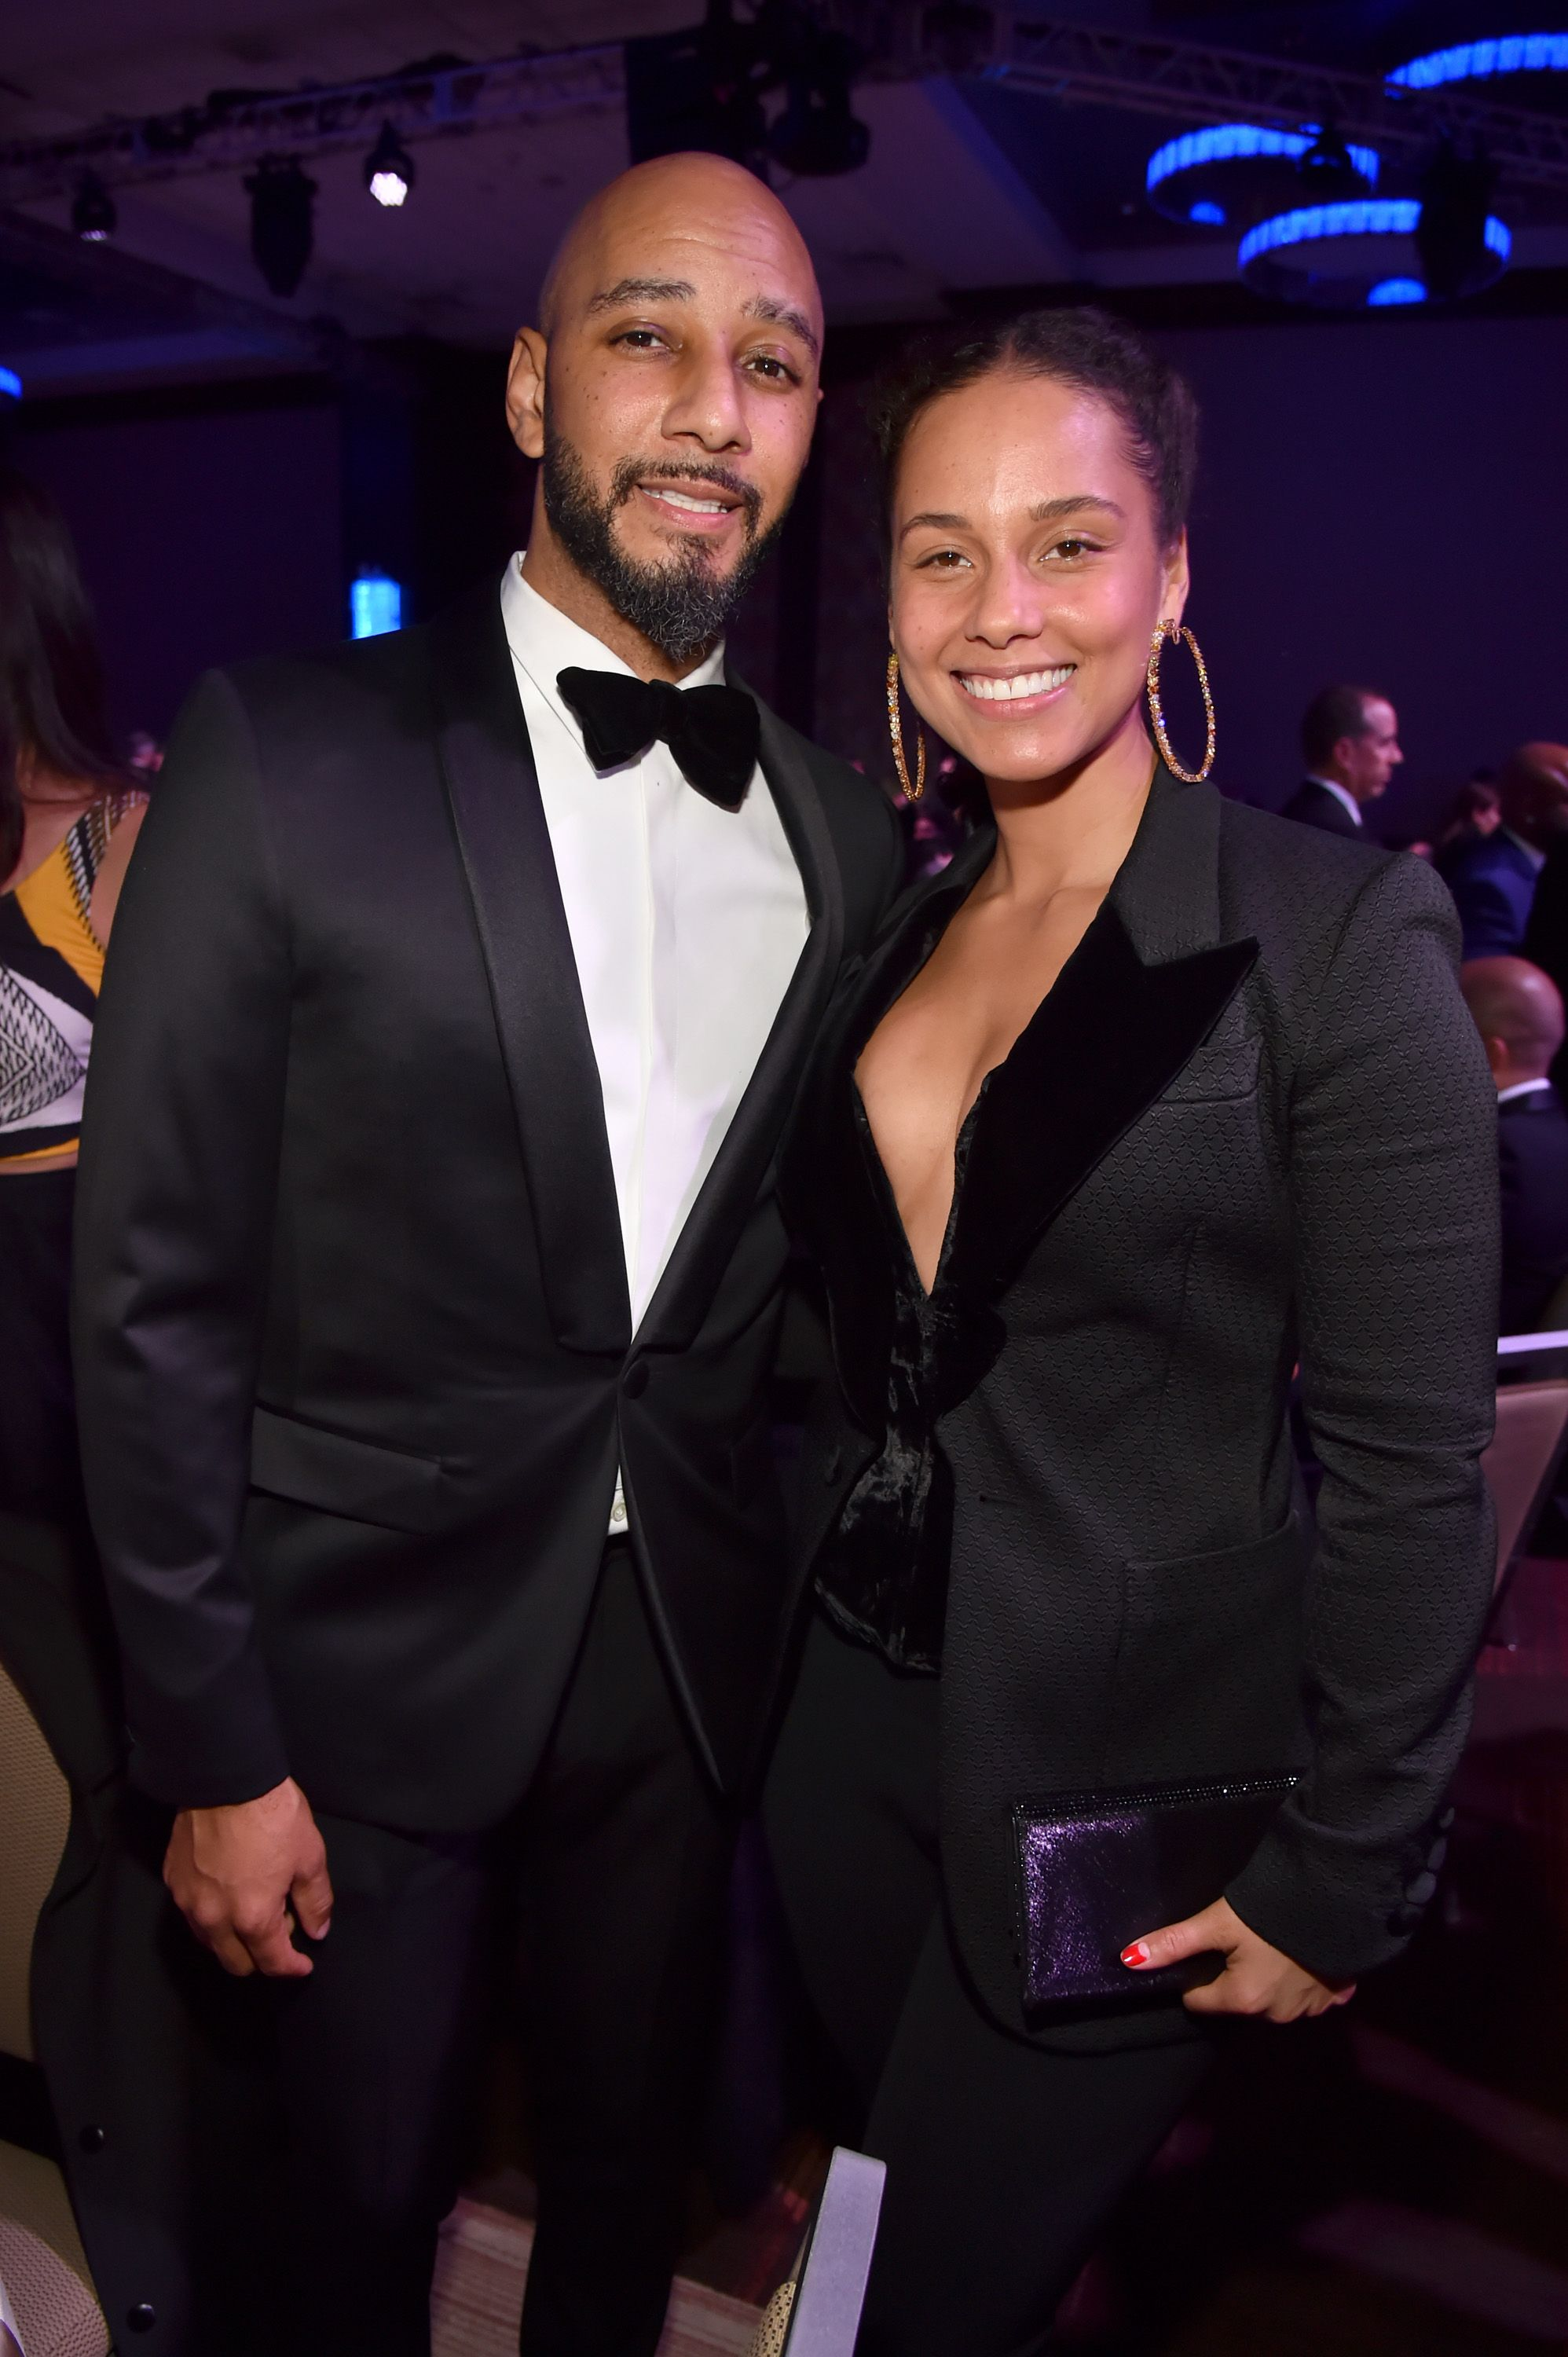 Married couple Alicia Keys and Swizz Beatz at the Pre-Grammy Gala on January 27, 2018 in New York. | Photo: Getty Images